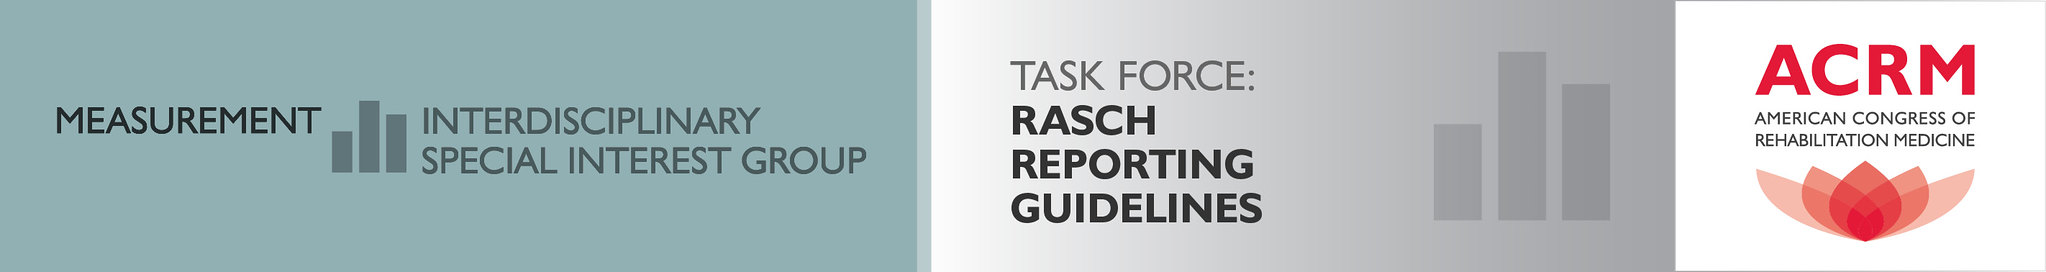 ACRM Measurement ISIG Rasch Reporting Guidelines Task Force banner